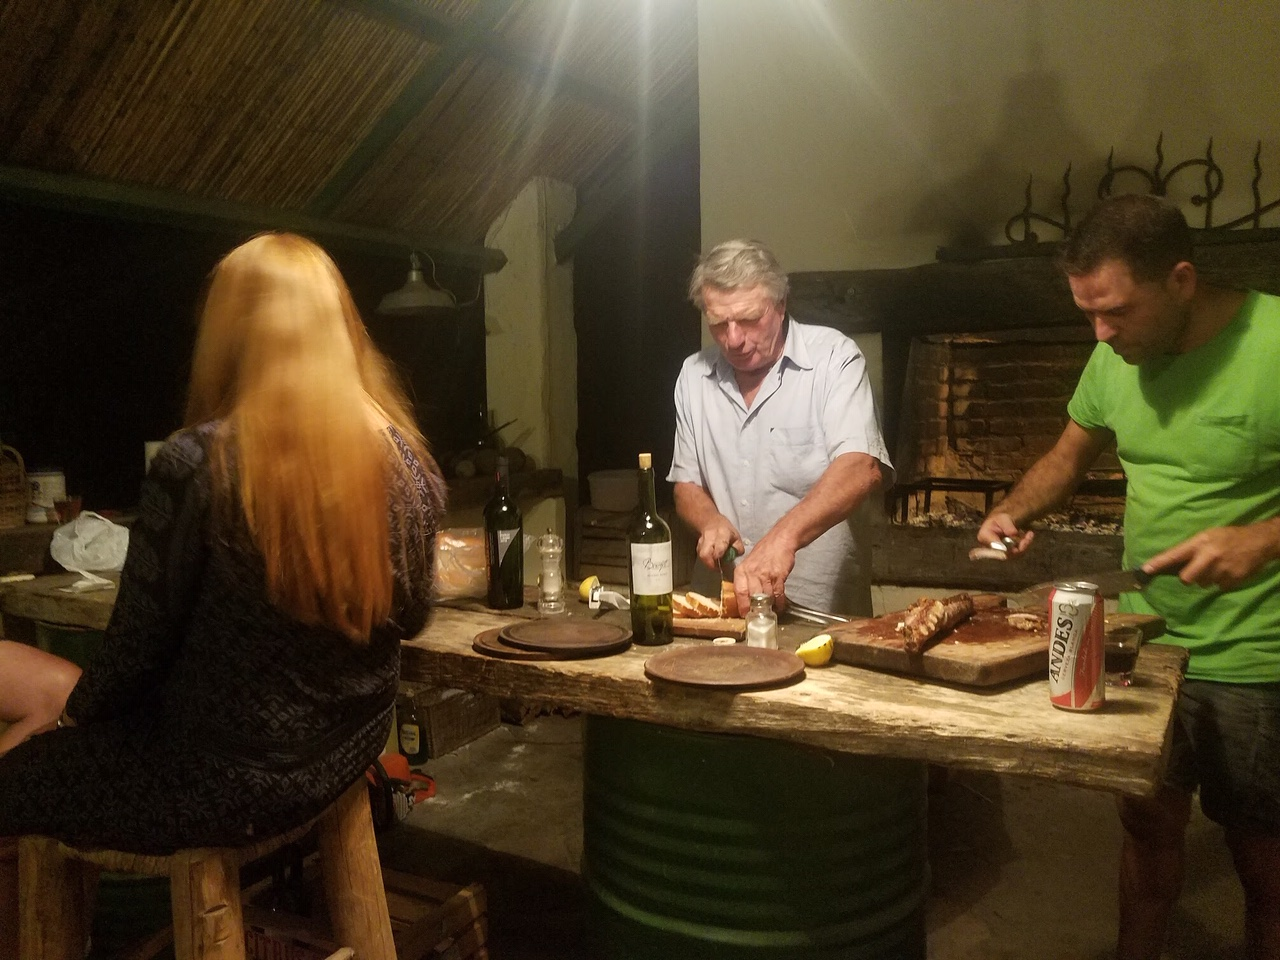 Men prepare the asado meal